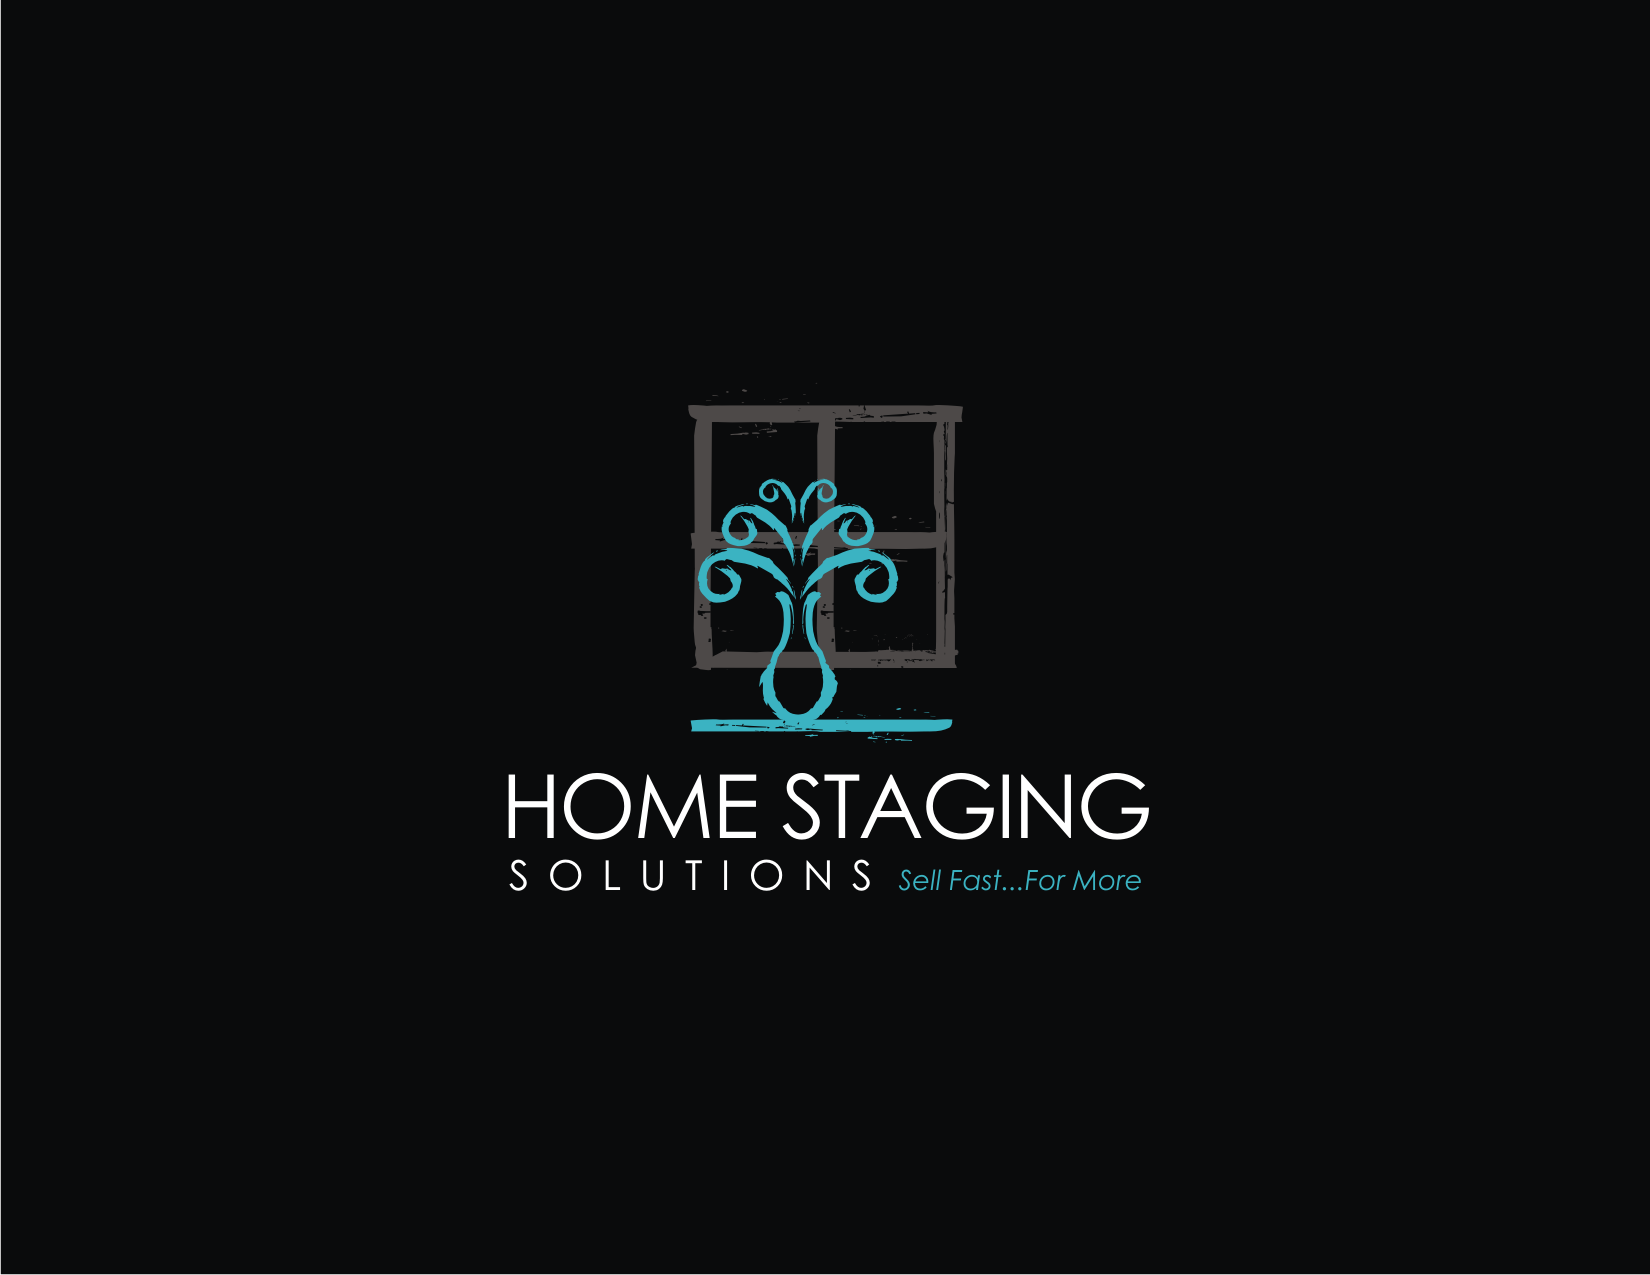 Help Home Staging Solutions with a new logo